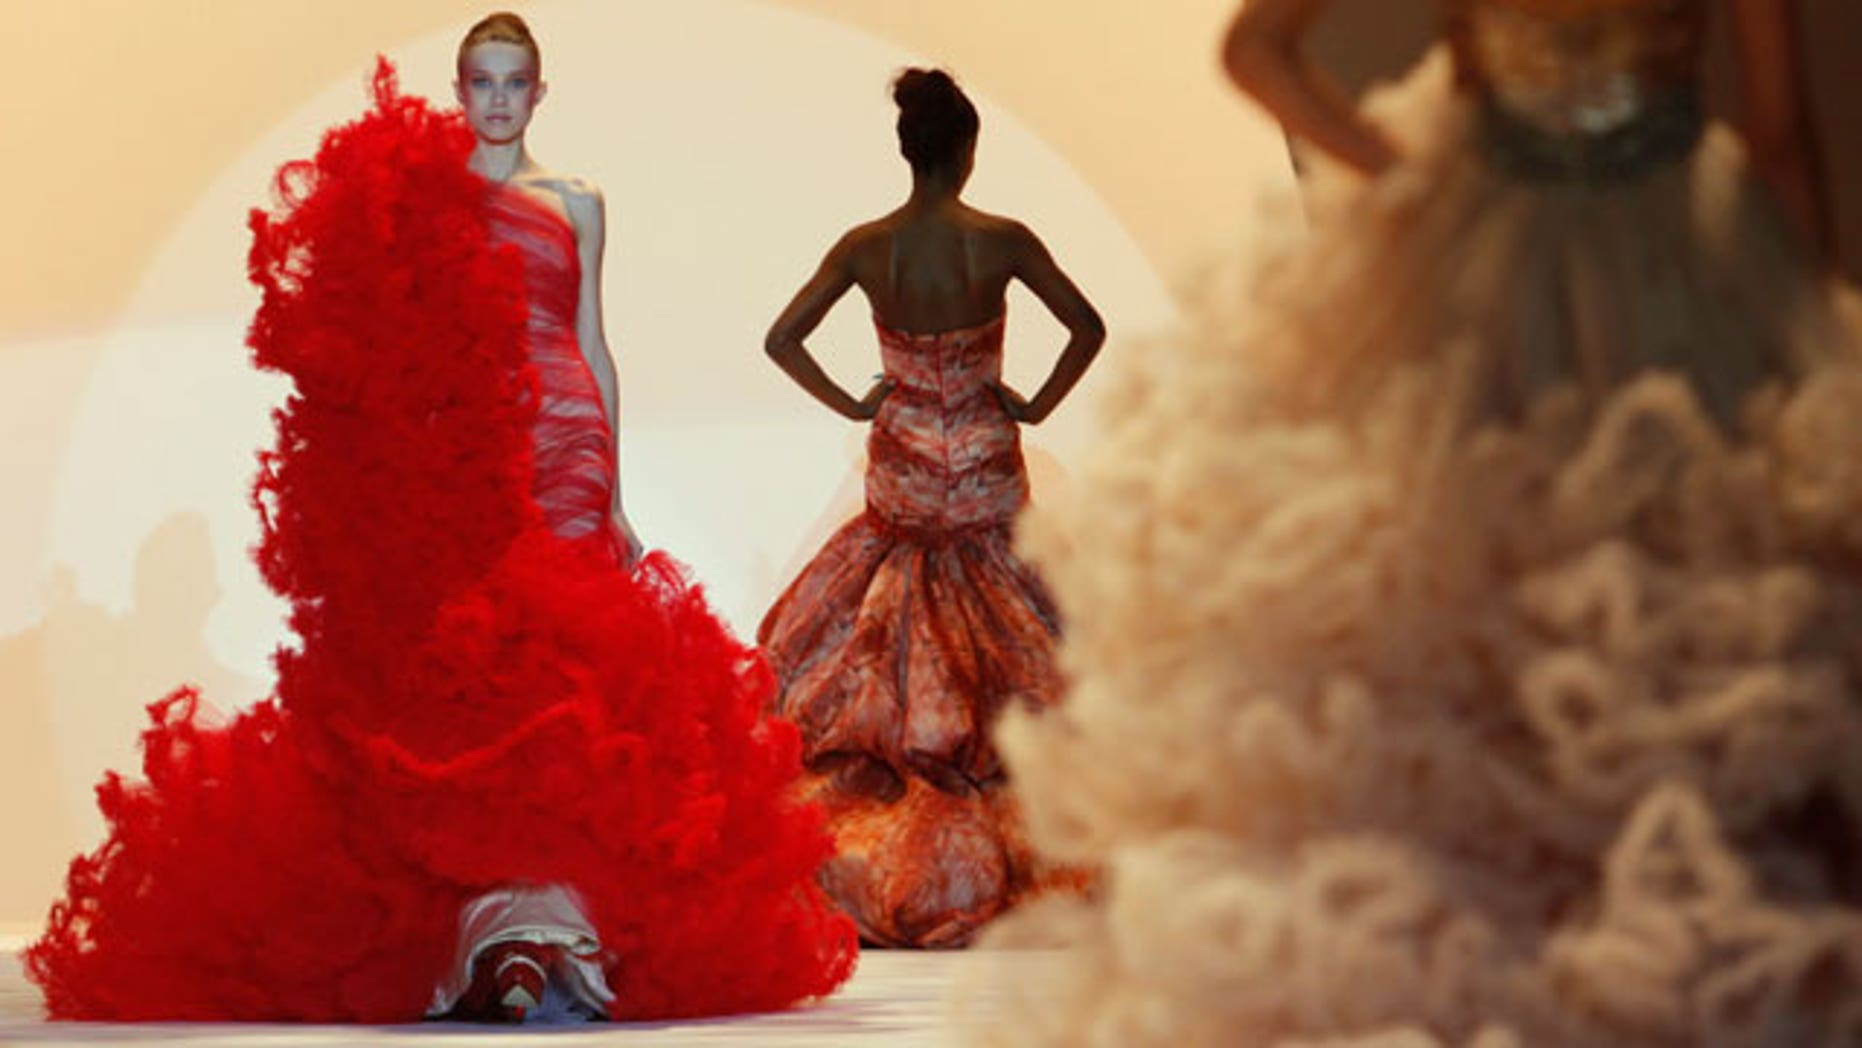 Sept. 9: Christian Siriano debuted his Spring 2011 collection at New York Fashion Week Thursday.